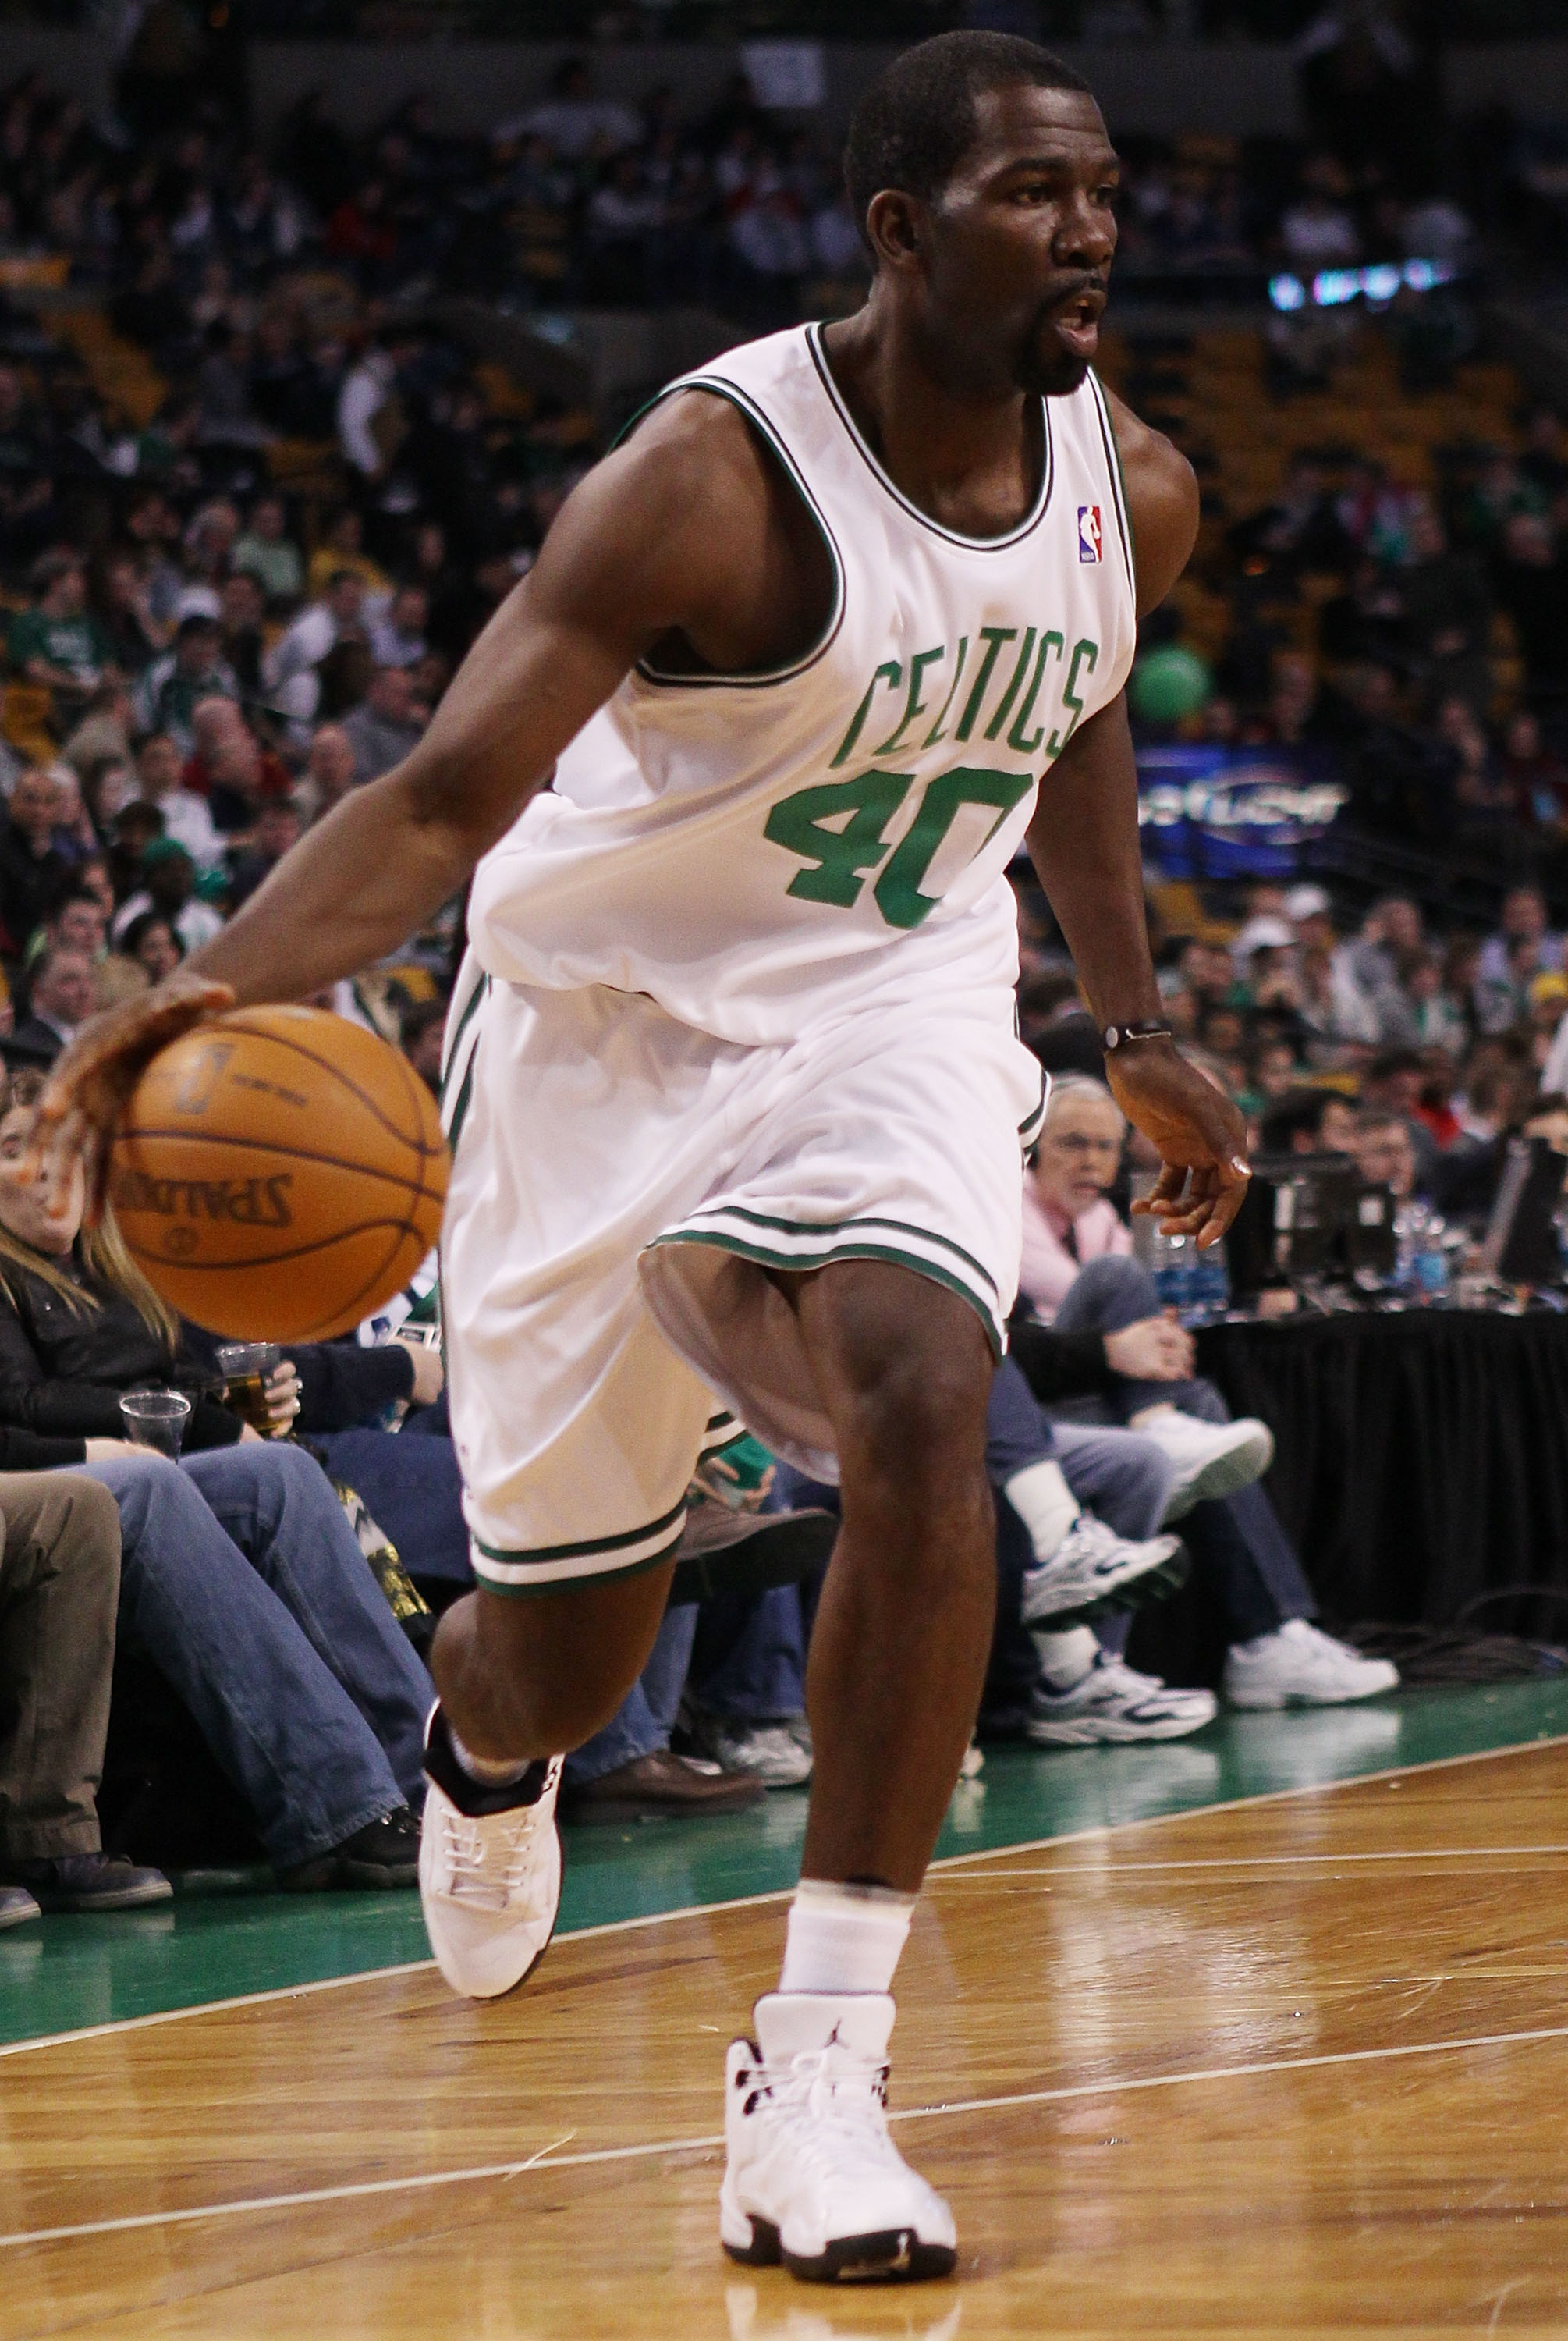 BOSTON - MARCH 10:  Michael Finley #40 of the Boston Celtics heads for the net in the second half against the Memphis Grizzlies on March 10, 2010 at the TD Garden in Boston, Massachusetts. The Grizzlies defeated the Celtics 111-91. NOTE TO USER: User expr